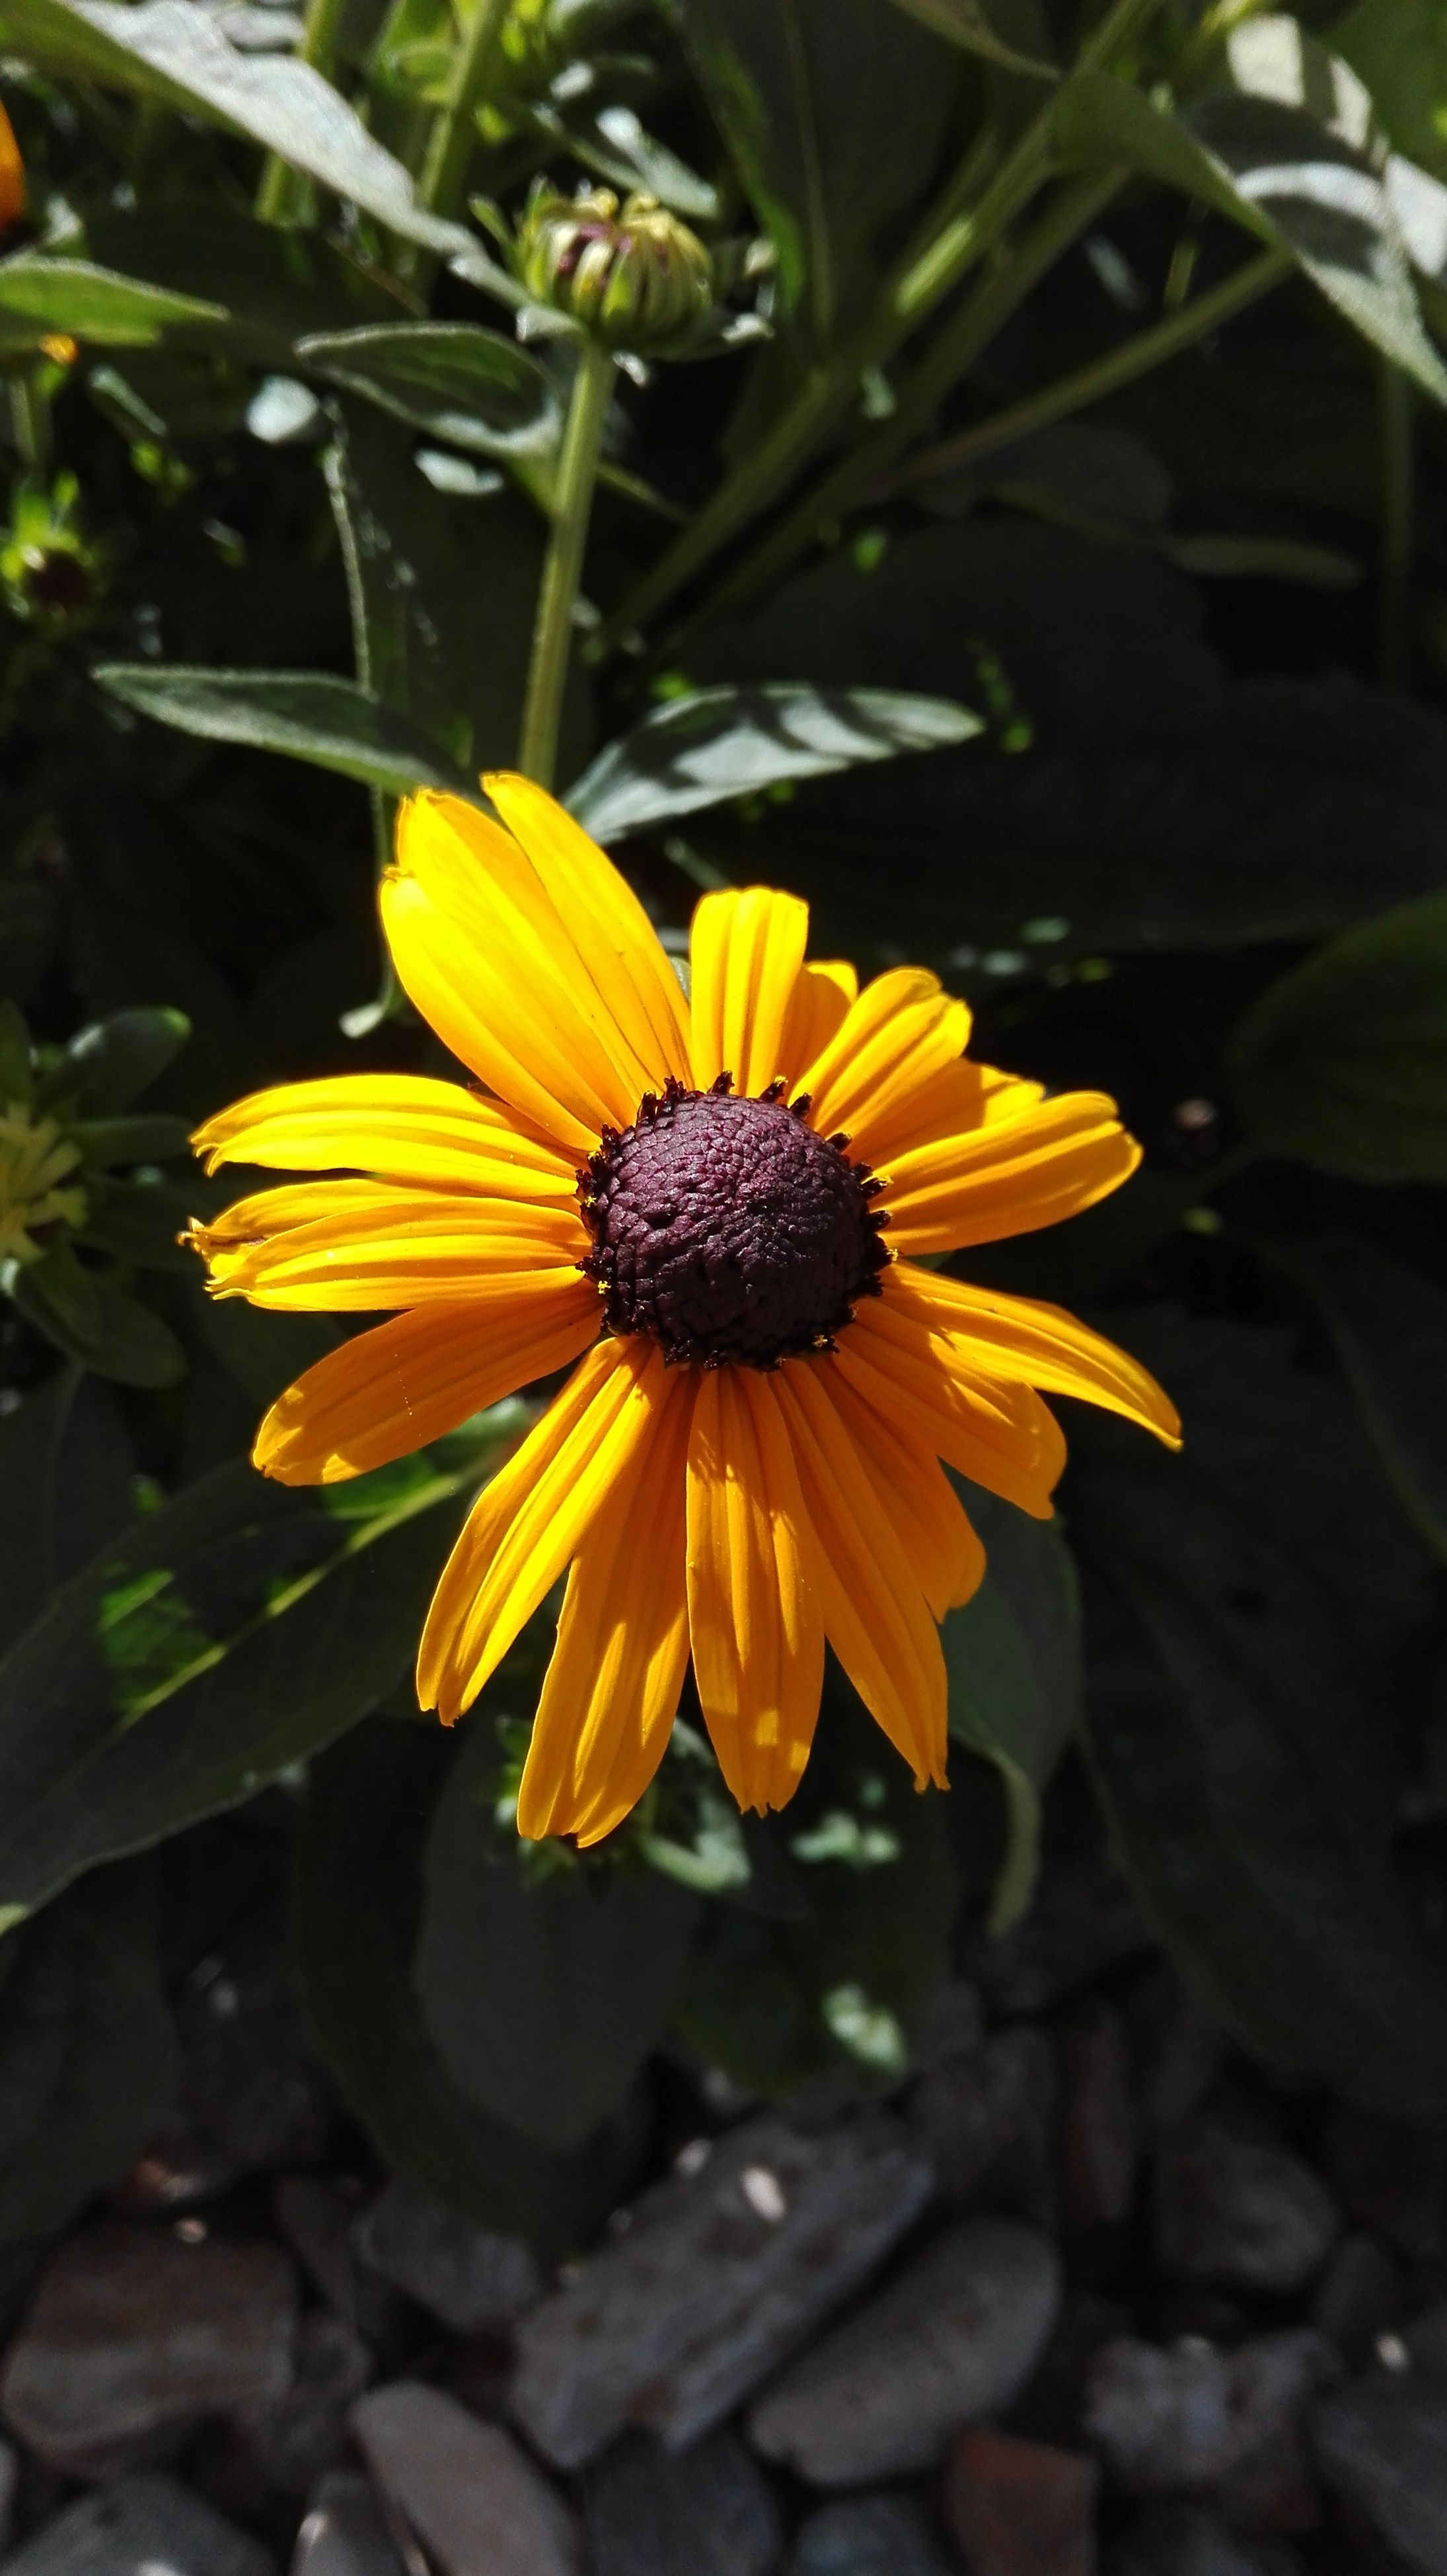 flower, petal, flower head, yellow, fragility, freshness, pollen, close-up, beauty in nature, blooming, growth, nature, focus on foreground, plant, in bloom, daisy, day, outdoors, no people, stamen, blossom, botany, selective focus